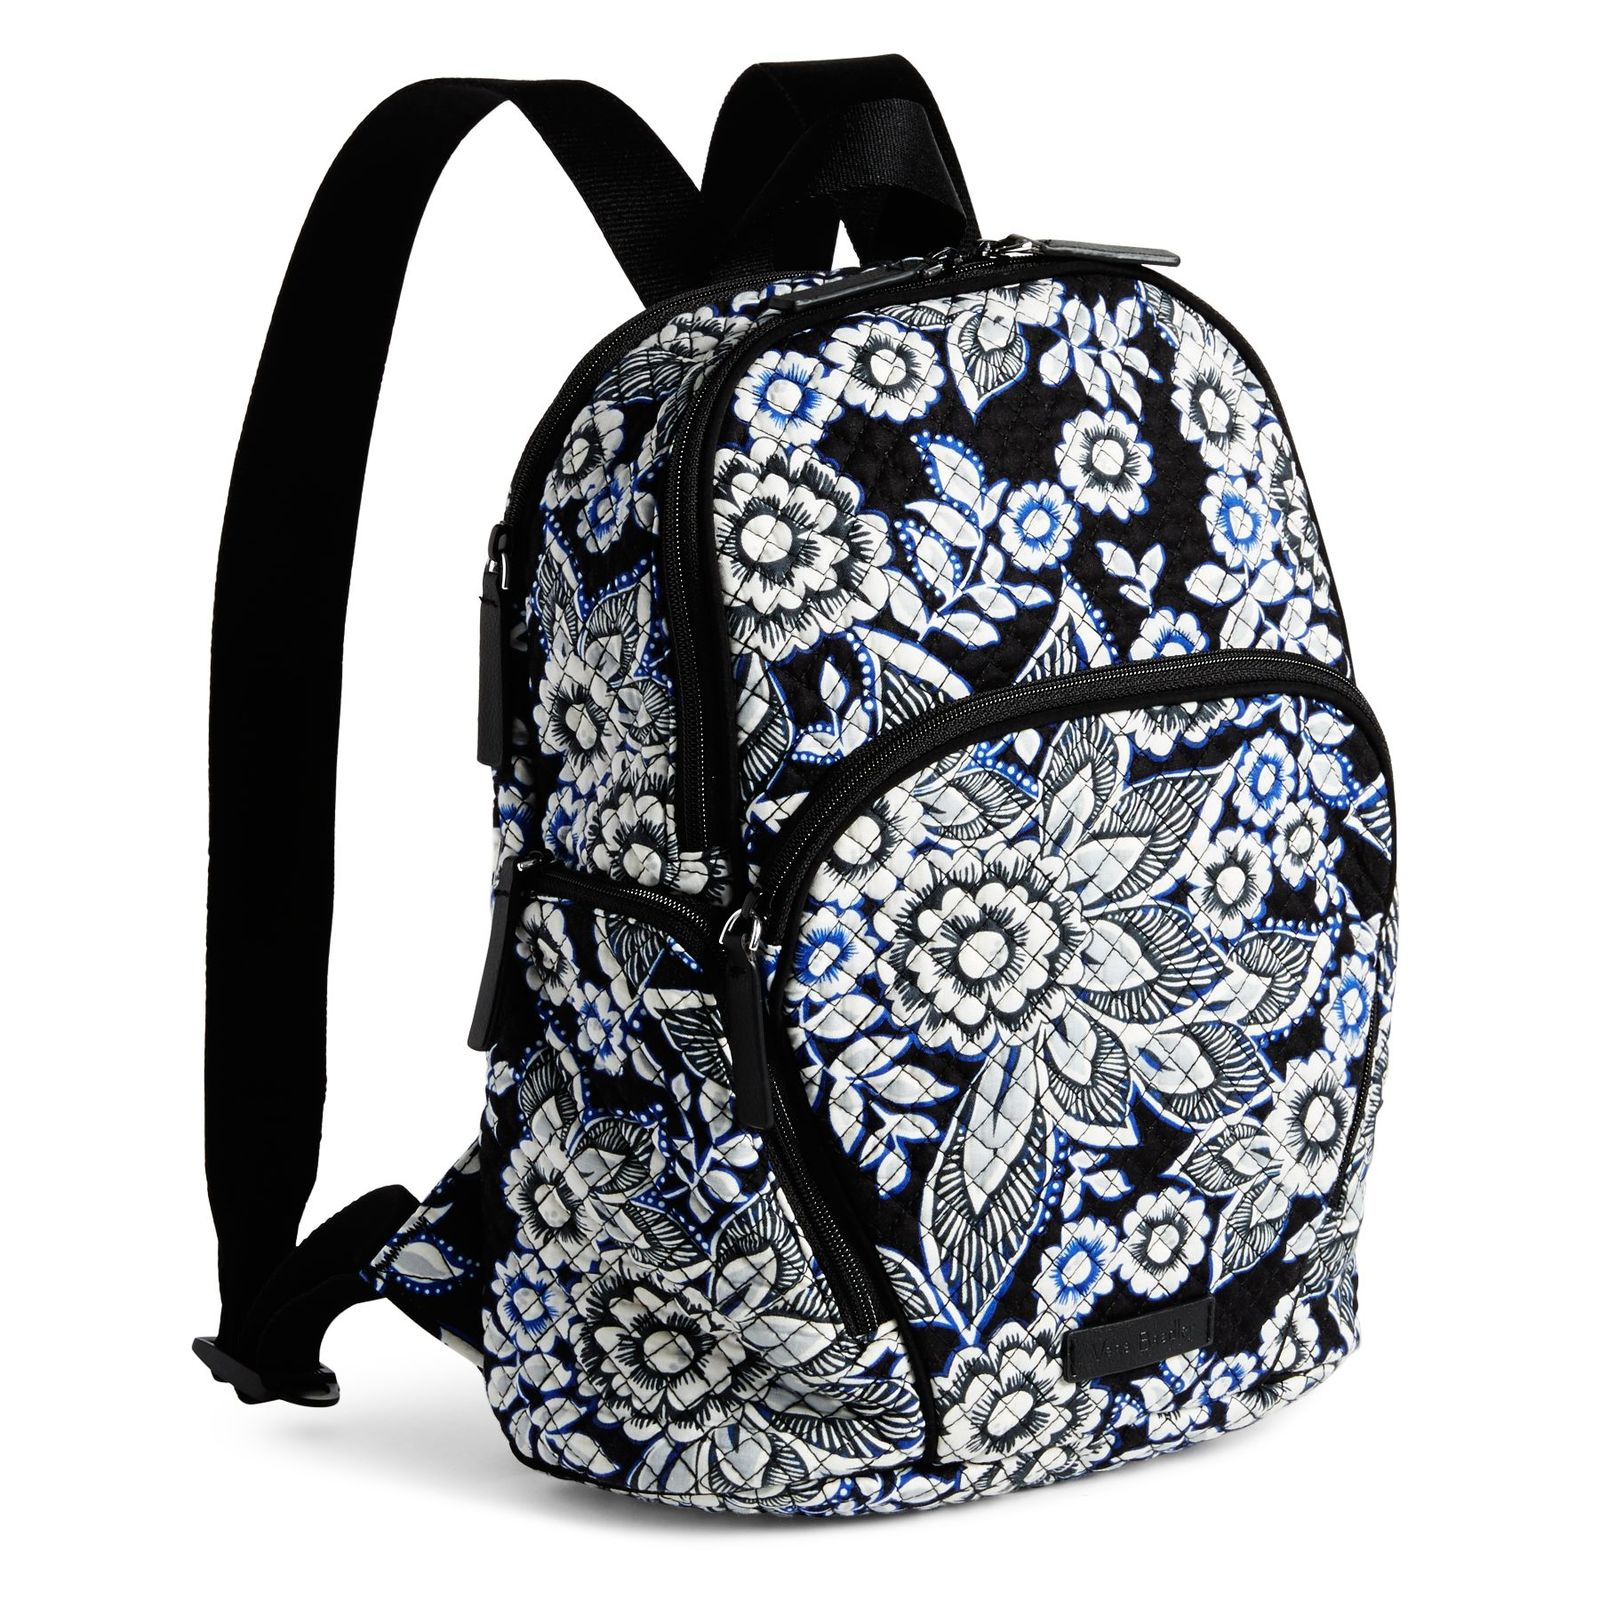 Vera Bradley Quilted Signature Cotton Hadley Backpack, Snow Lotus